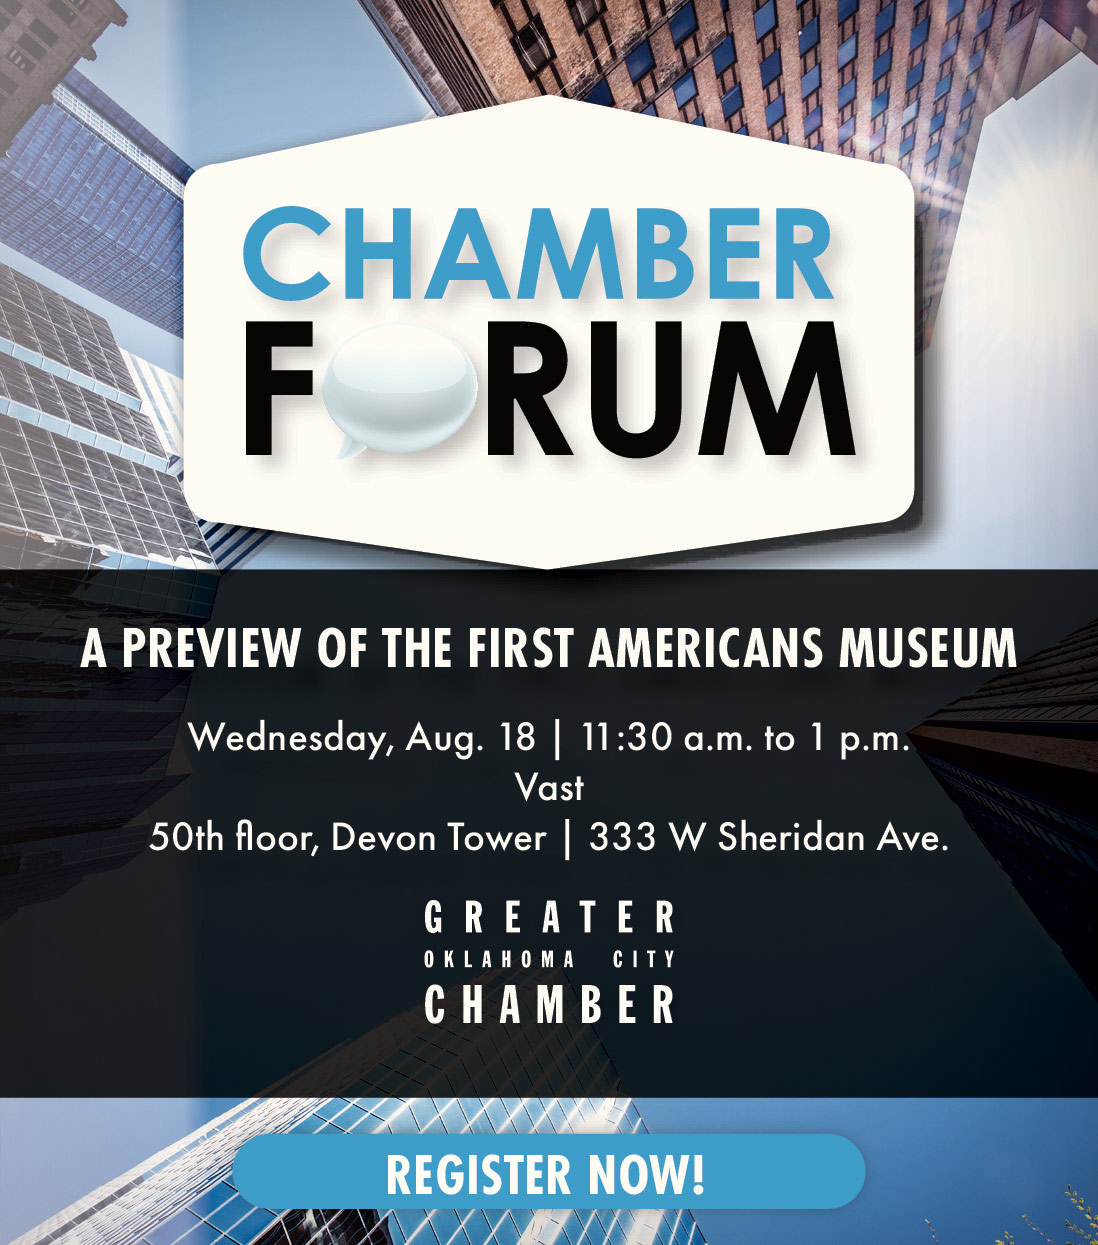 Chamber Forum flyer, showcasing the First Americans Museum, which will highlight the histories of Oklahoma's 39 tribal nations